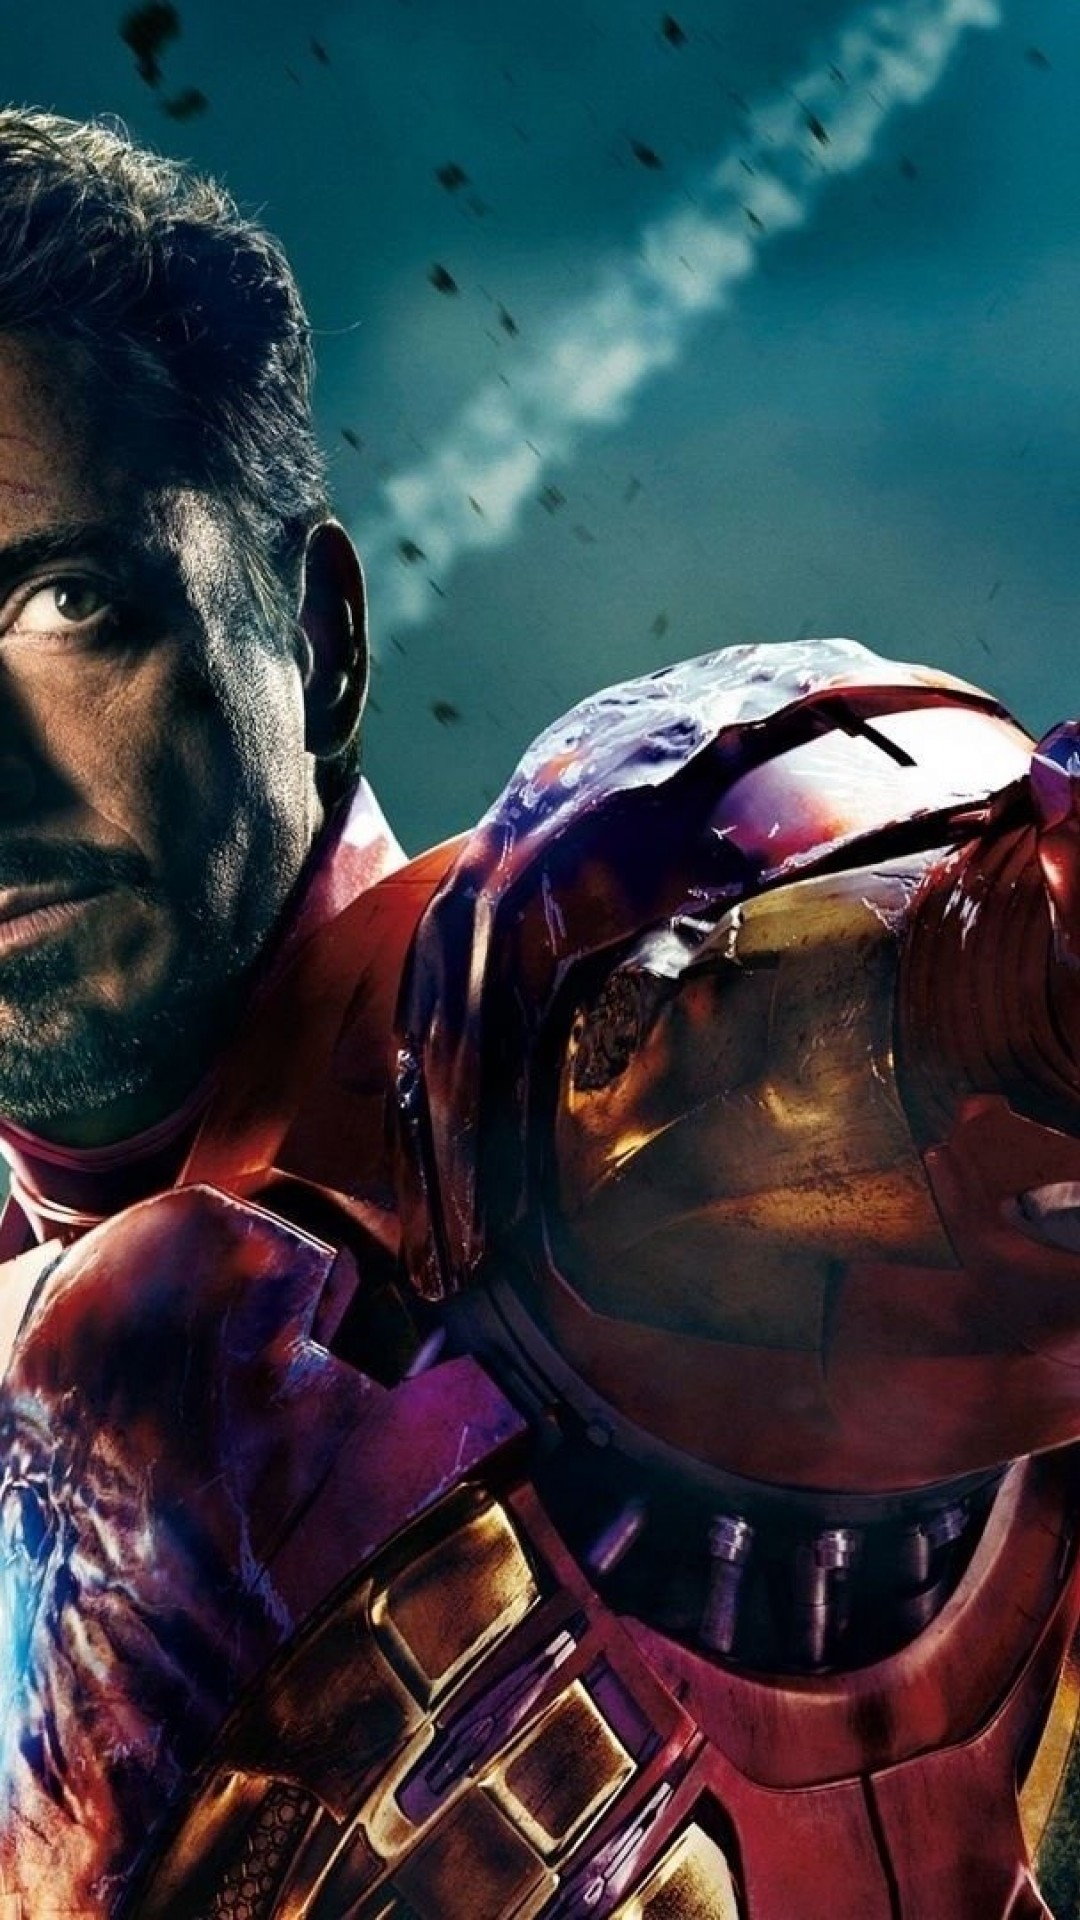 Most Beautiful Iphone Wallpapers 10 Hd Iron Man Iphone 6 Wallpapers The Nology